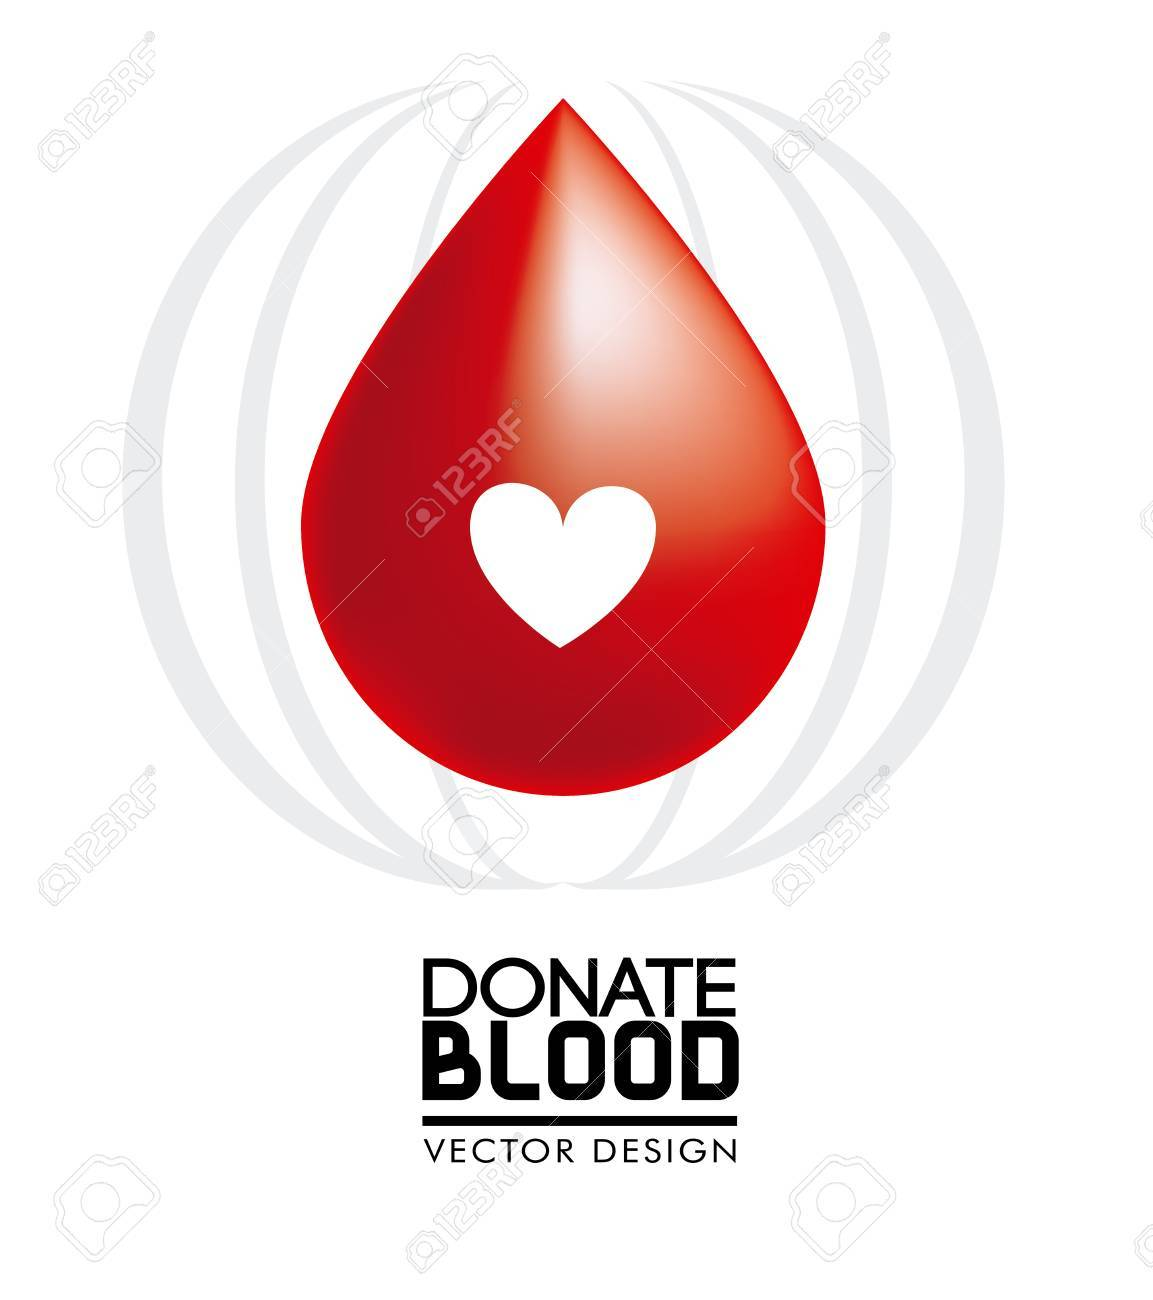 donate blood over white background vector illustration Stock Vector - 22334891